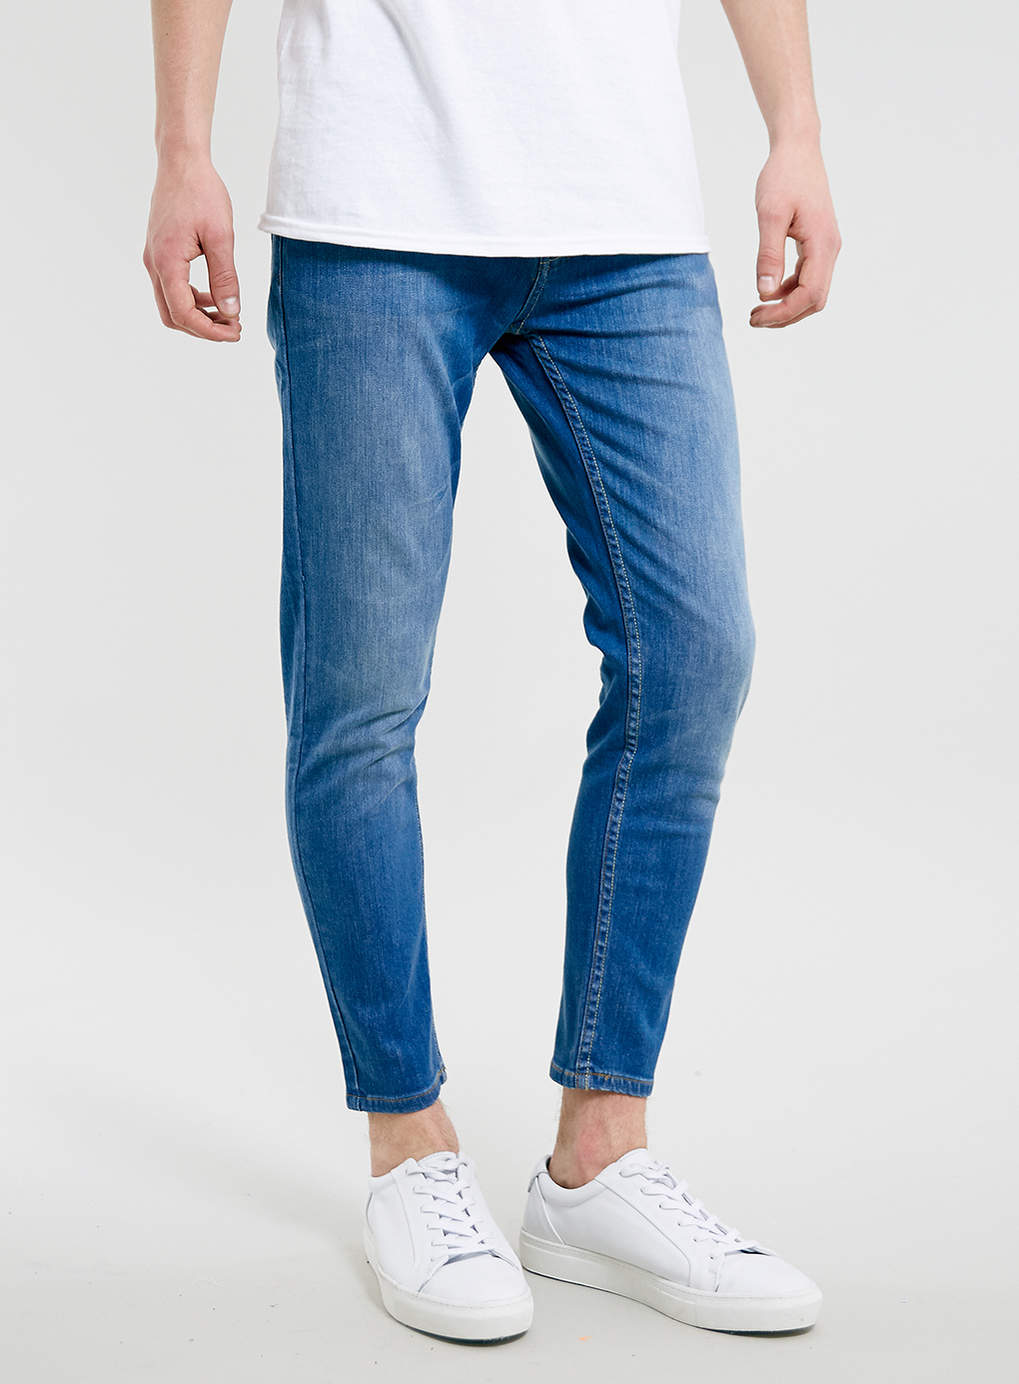 Find mens cropped jeans at ShopStyle. Shop the latest collection of mens cropped jeans from the most popular stores - all in one place.